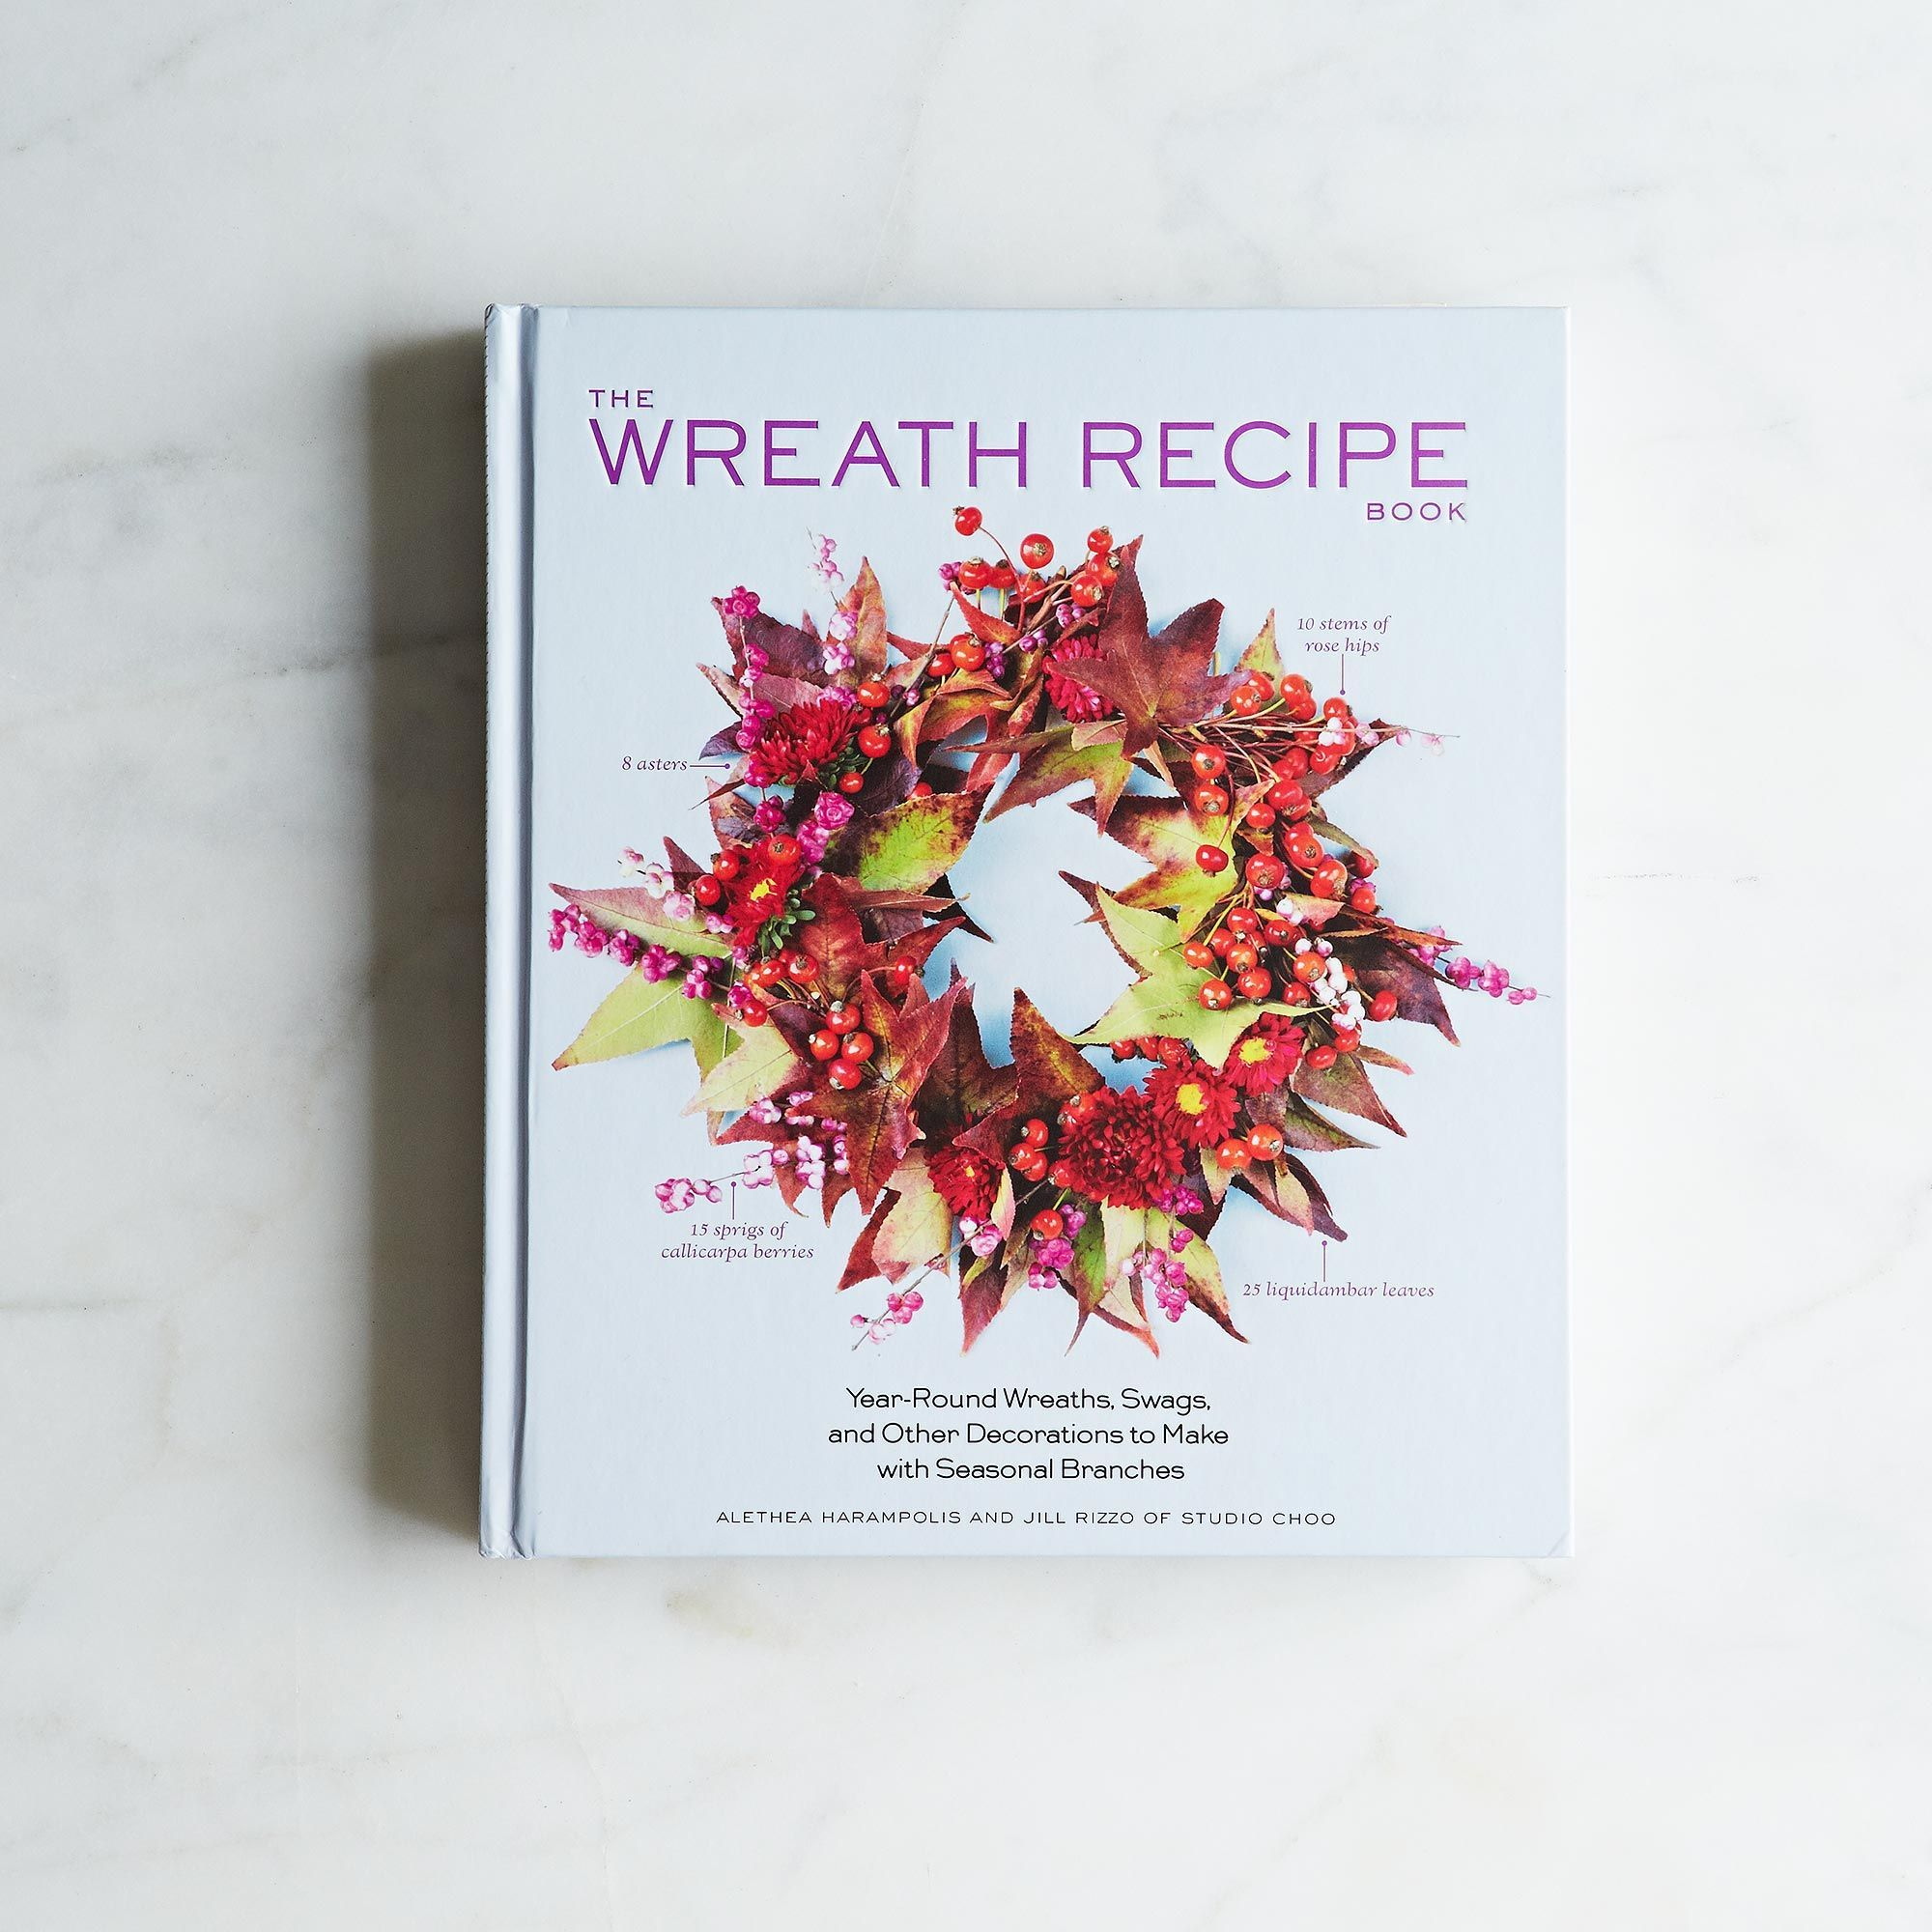 847915ec-9711-434d-92d5-310b9e9c3357--2014_1112_artisan_books_the_wreath_recipe_book_signed_244